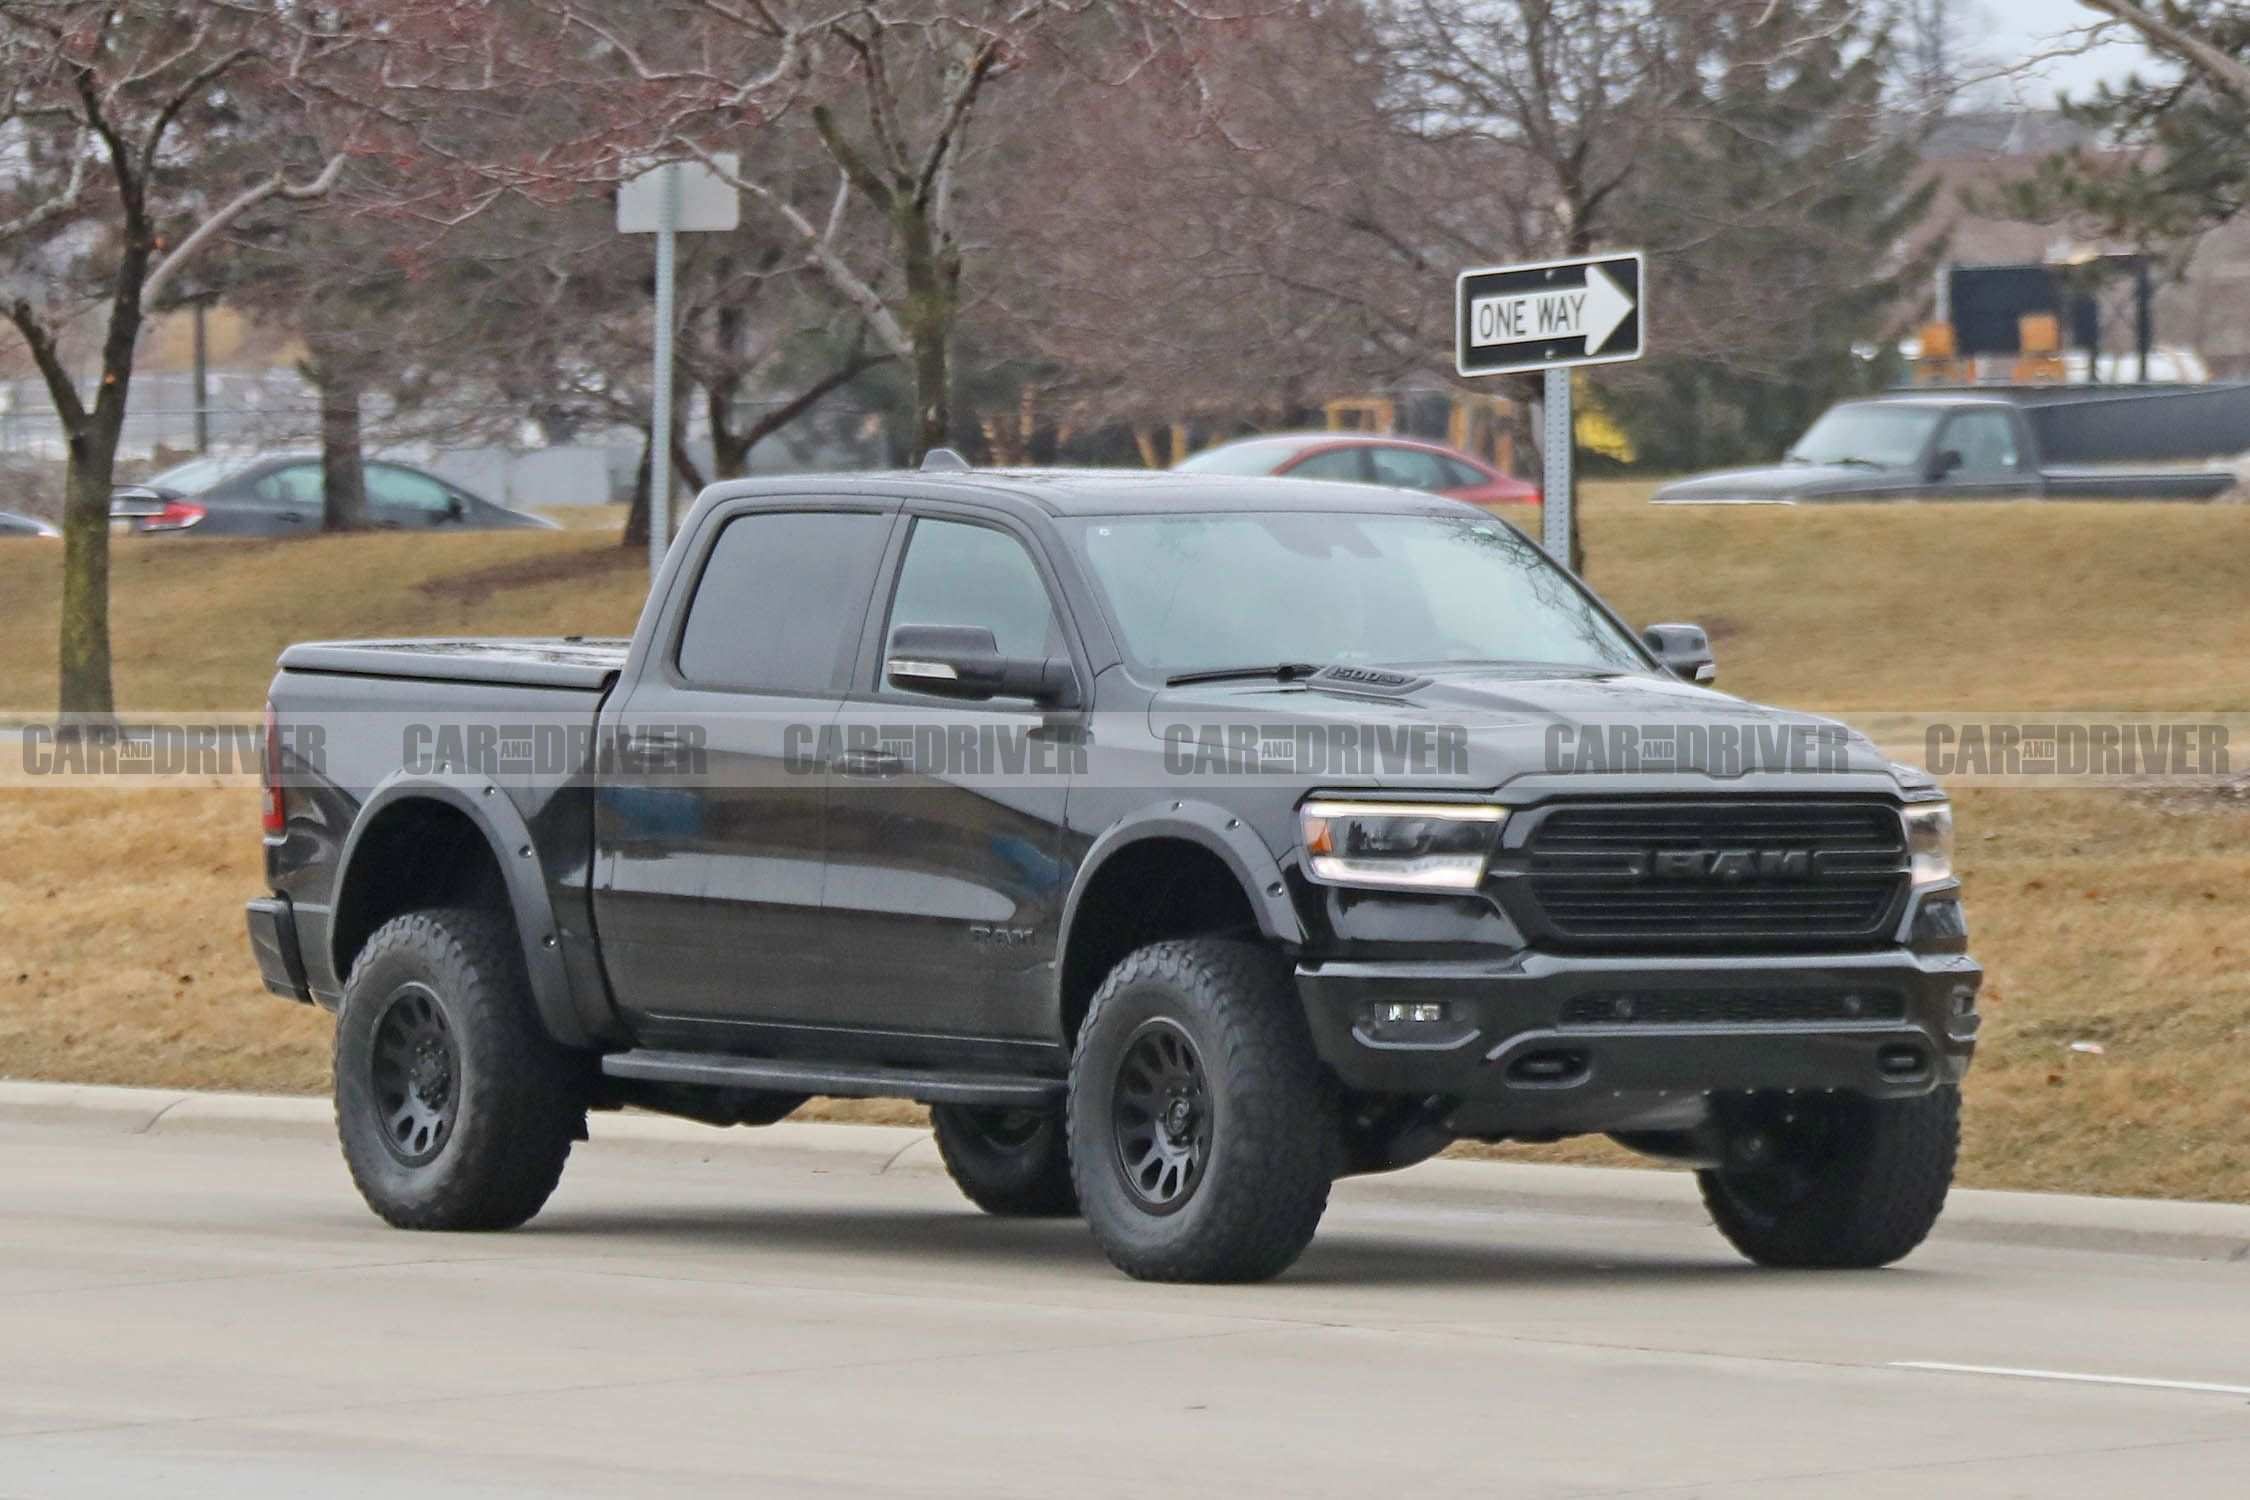 13 New 2020 Dodge Ram Rebel Trx New Model And Performance